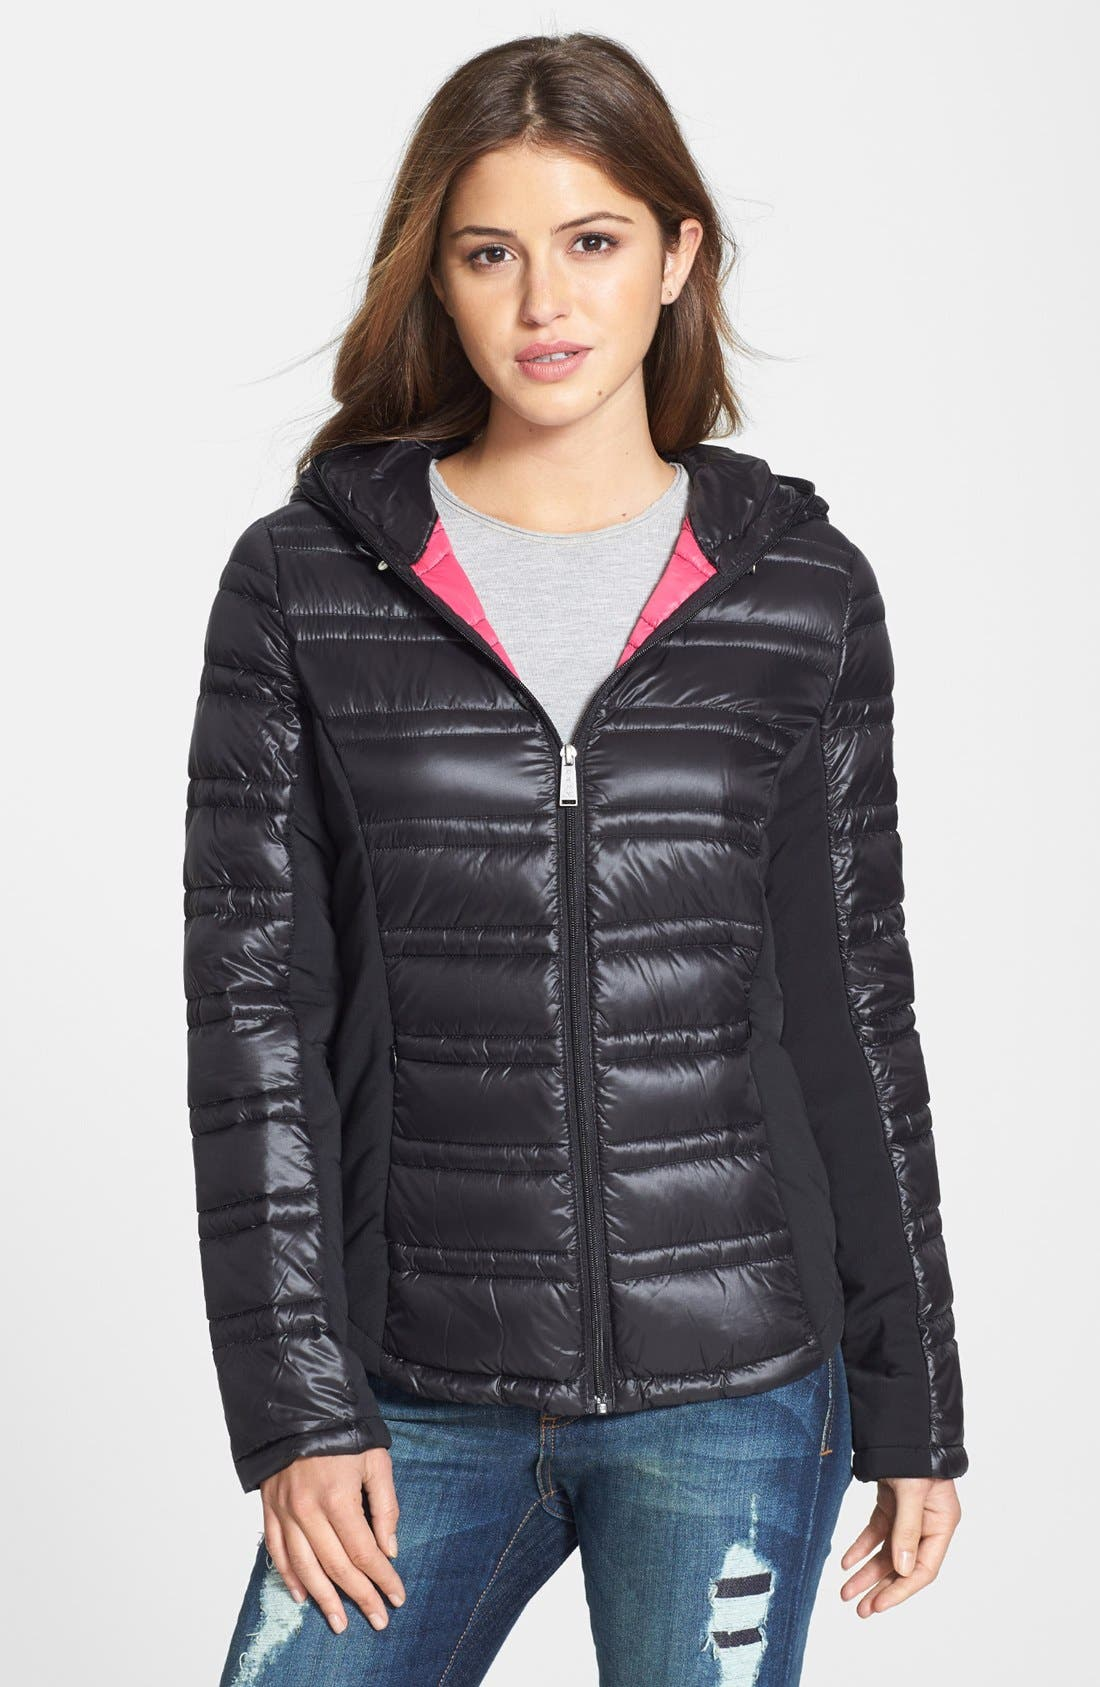 Hooded Packable Down Jacket,                             Main thumbnail 1, color,                             001